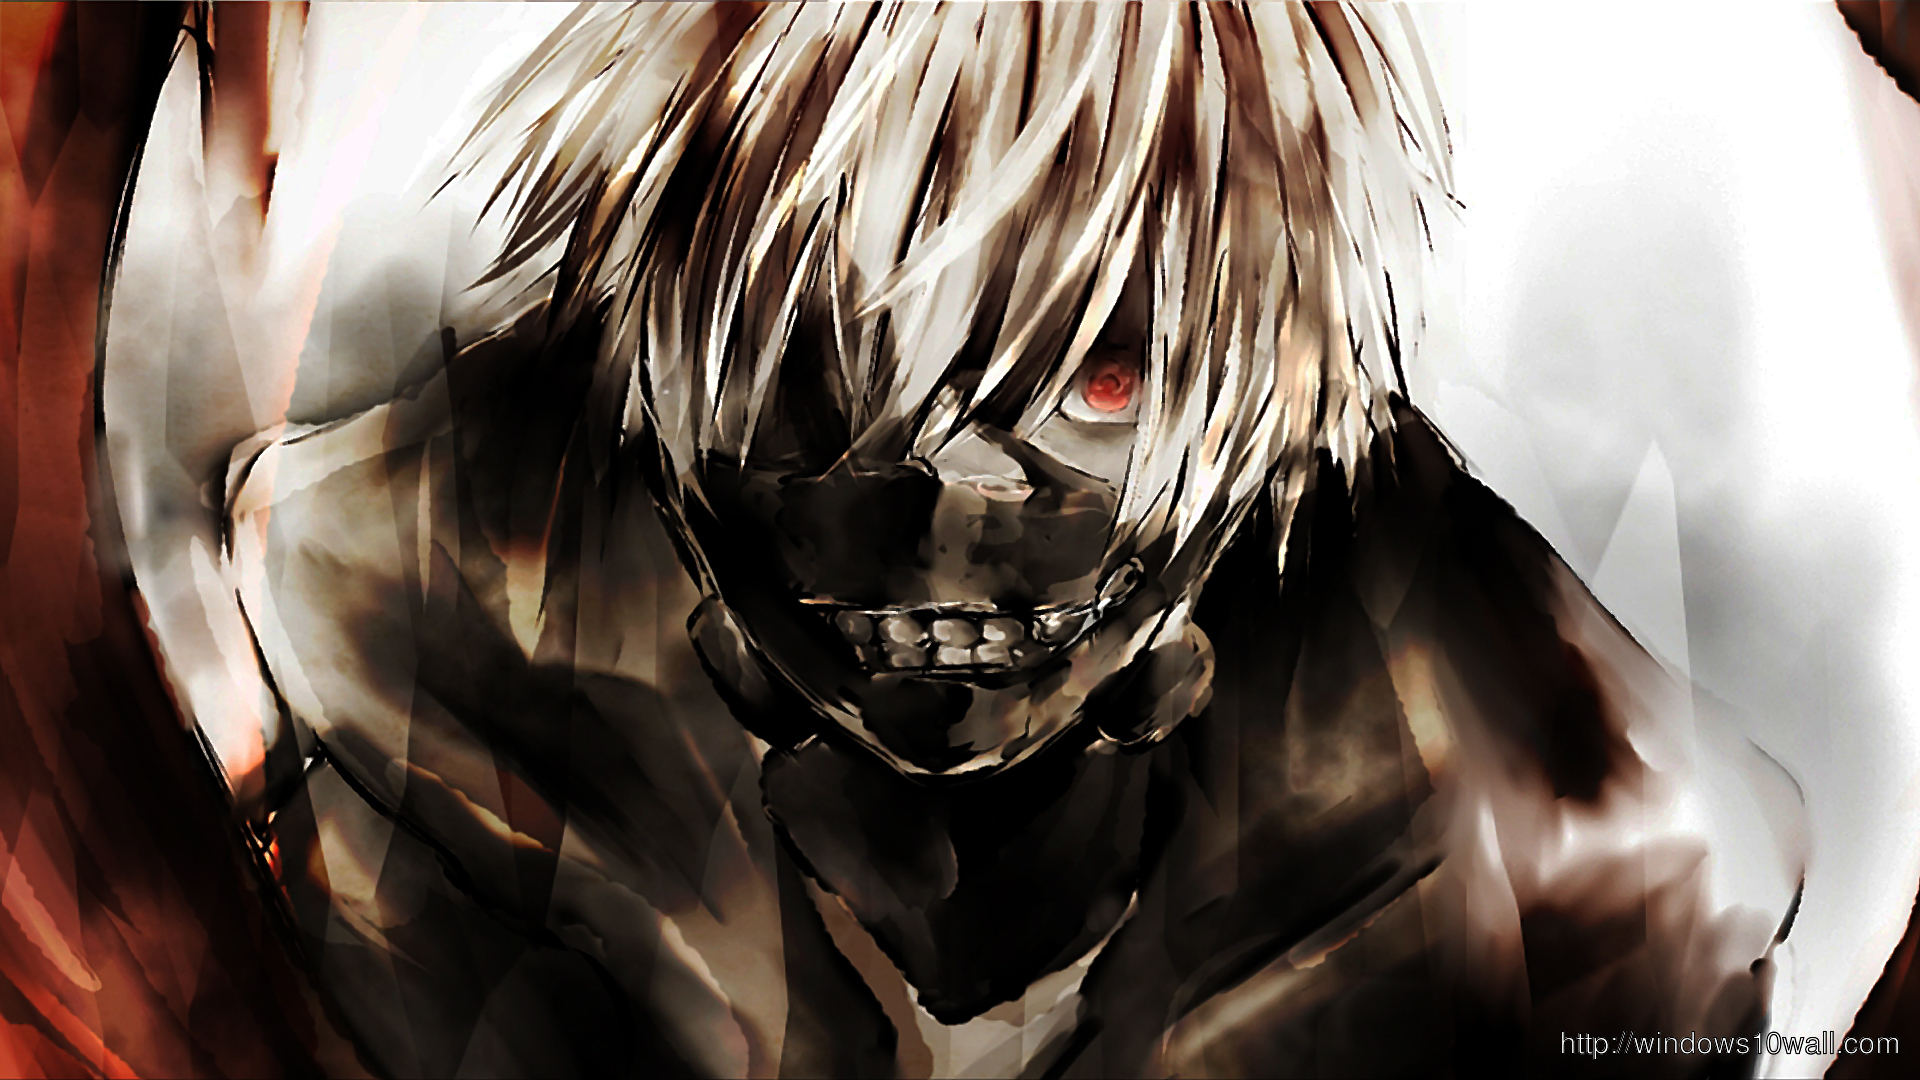 Tokyo Ghoul Hd Wallpaper Tokyo Ghoul Hd Wallpaper Anime 2985438 Hd Wallpaper Backgrounds Download